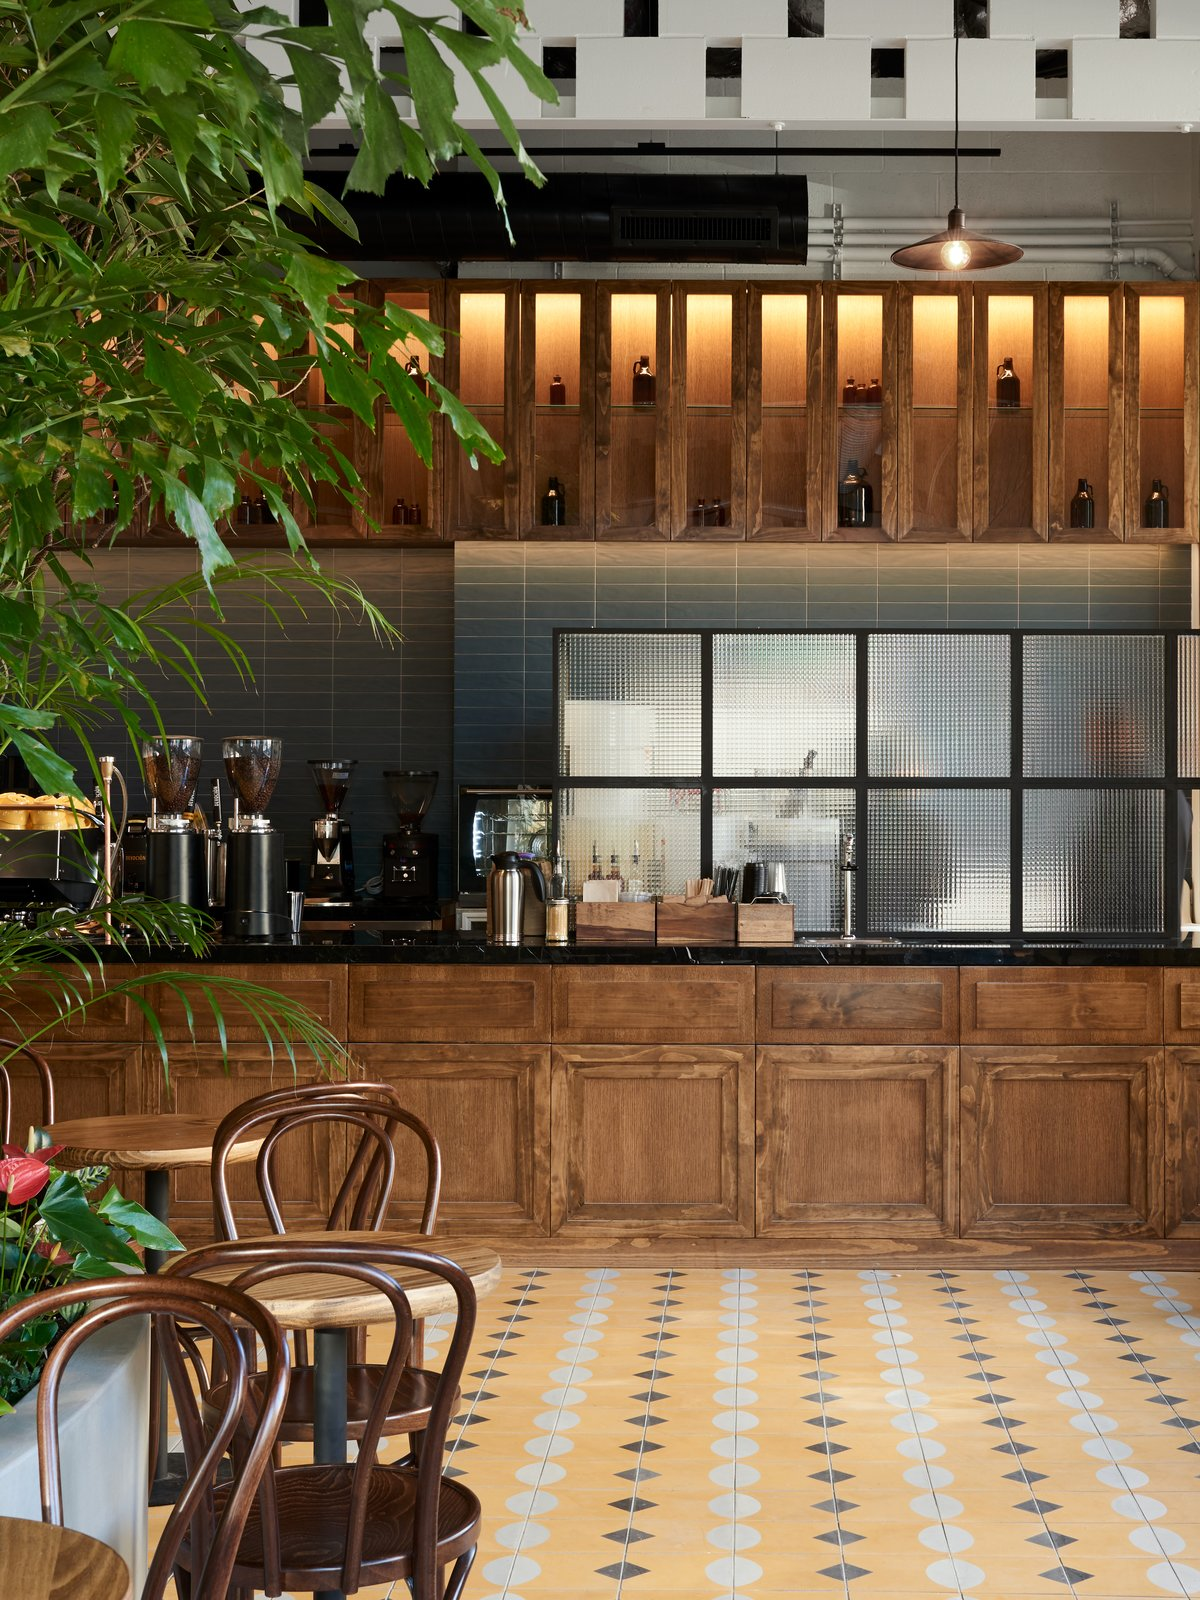 """Additional elements found inDevoción's newest location include a 26-foot wood bar that displays the cafe's """"Ground Control"""" drip machine, a custom Slayer espresso machine and Espresso Grinders from Ceado E37k that boast the slowest RPM on the market, a feature that prevents overheating."""